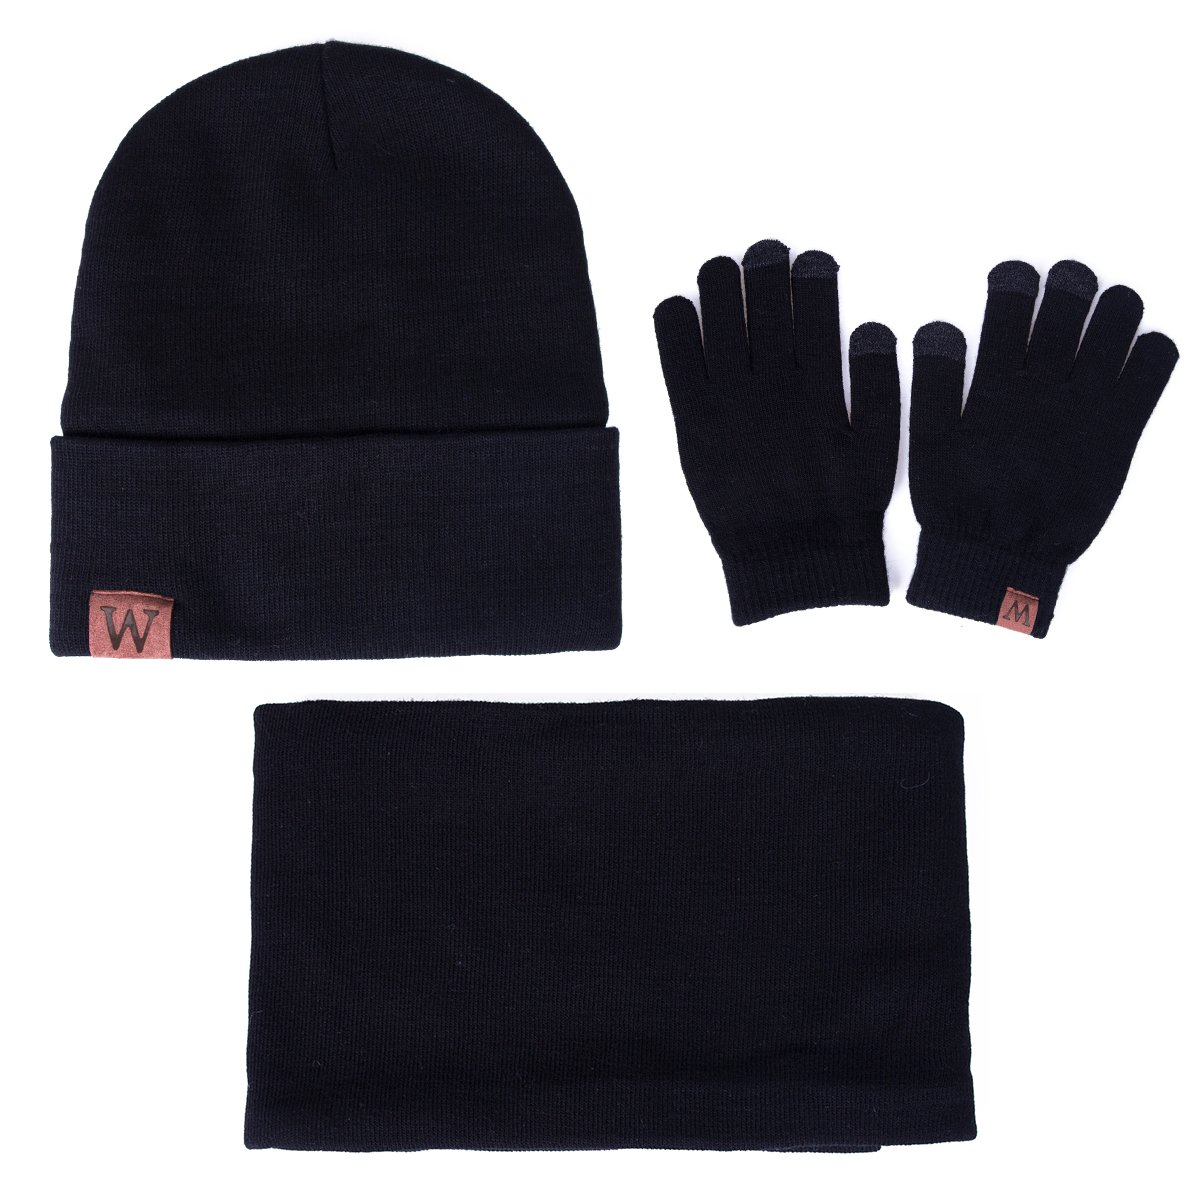 EVRFELAN Winter Warm Hat Beanie thick infinity Scarf Smart Touch screen Texting Gloves (Black) by EVRFELAN (Image #6)